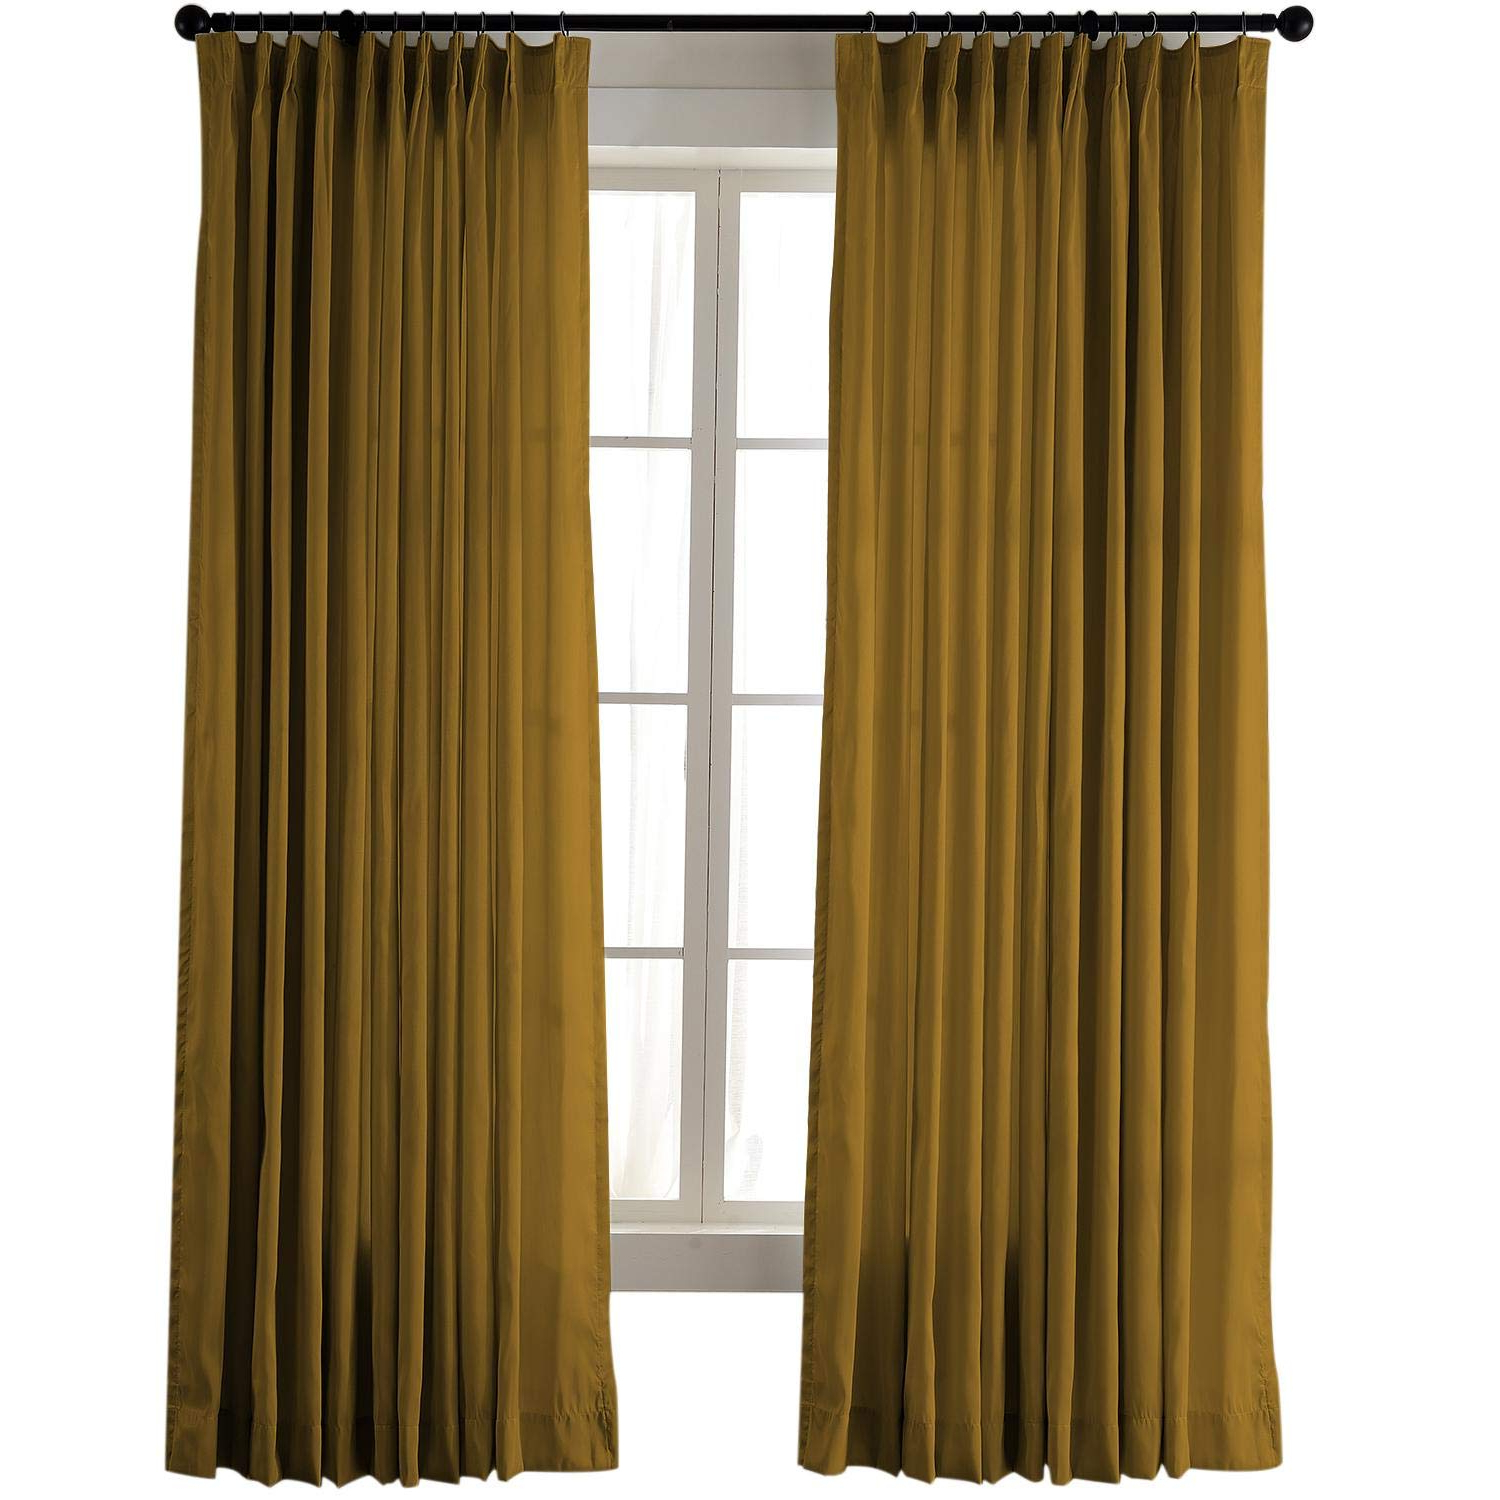 """Most Popular Vintage Textured Faux Dupioni Silk Curtain Panels Regarding Chadmade Vintage Textured Faux Dupioni Silk Drape Curtain Panel Pinch Pleated 50"""" W X 96"""" L With White Blackout Lined, Flax Gold (View 12 of 20)"""